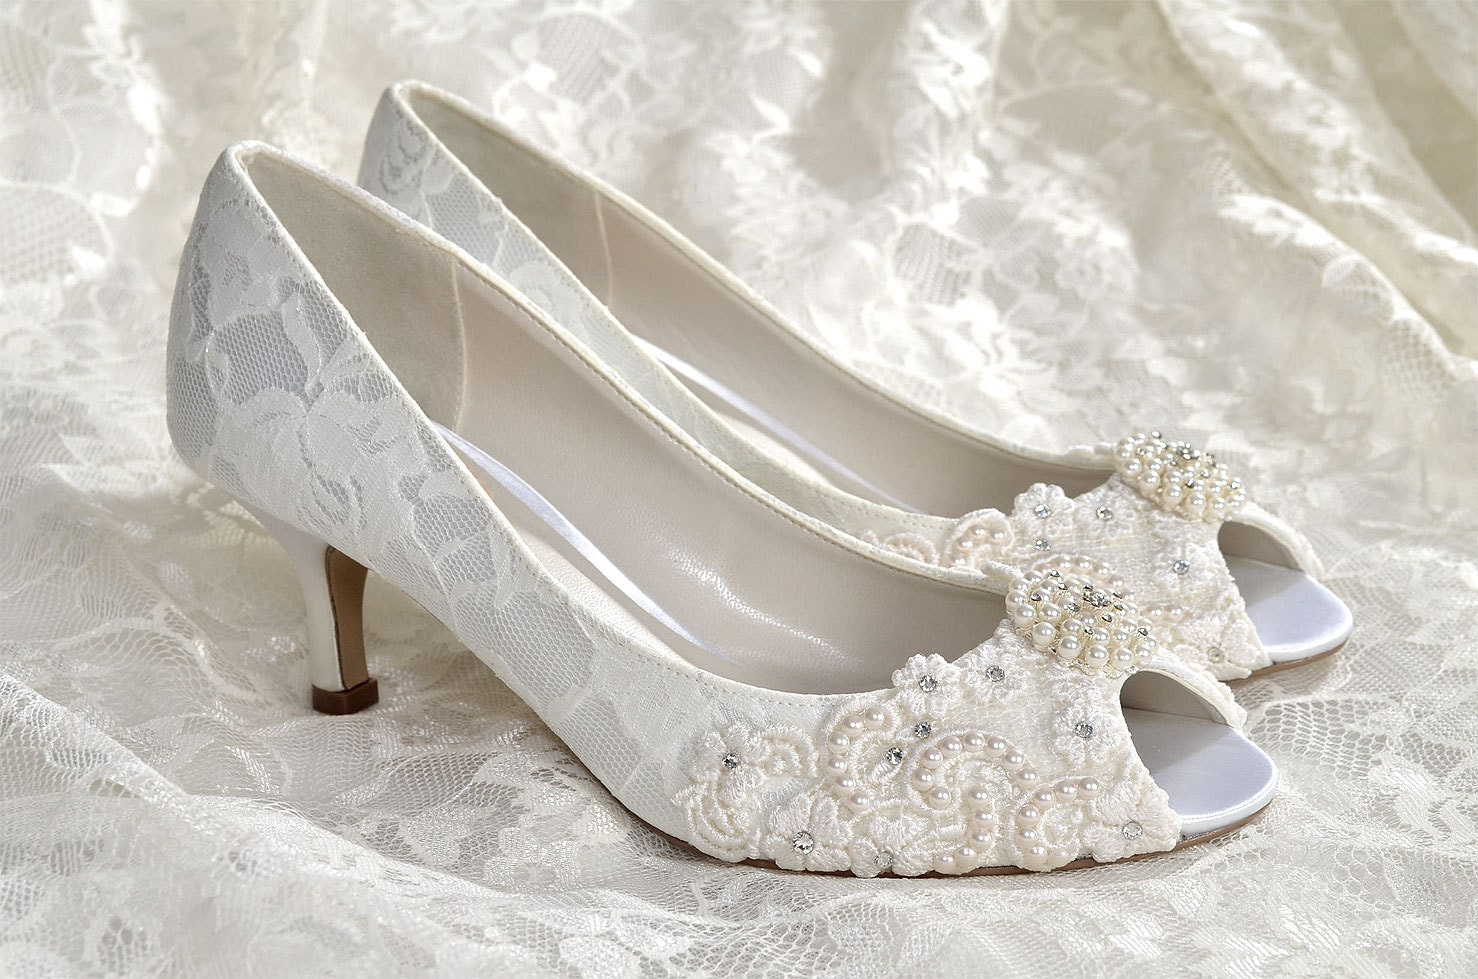 Wedding shoes medium heels custom colors vintage wedding for Low heel dress shoes wedding